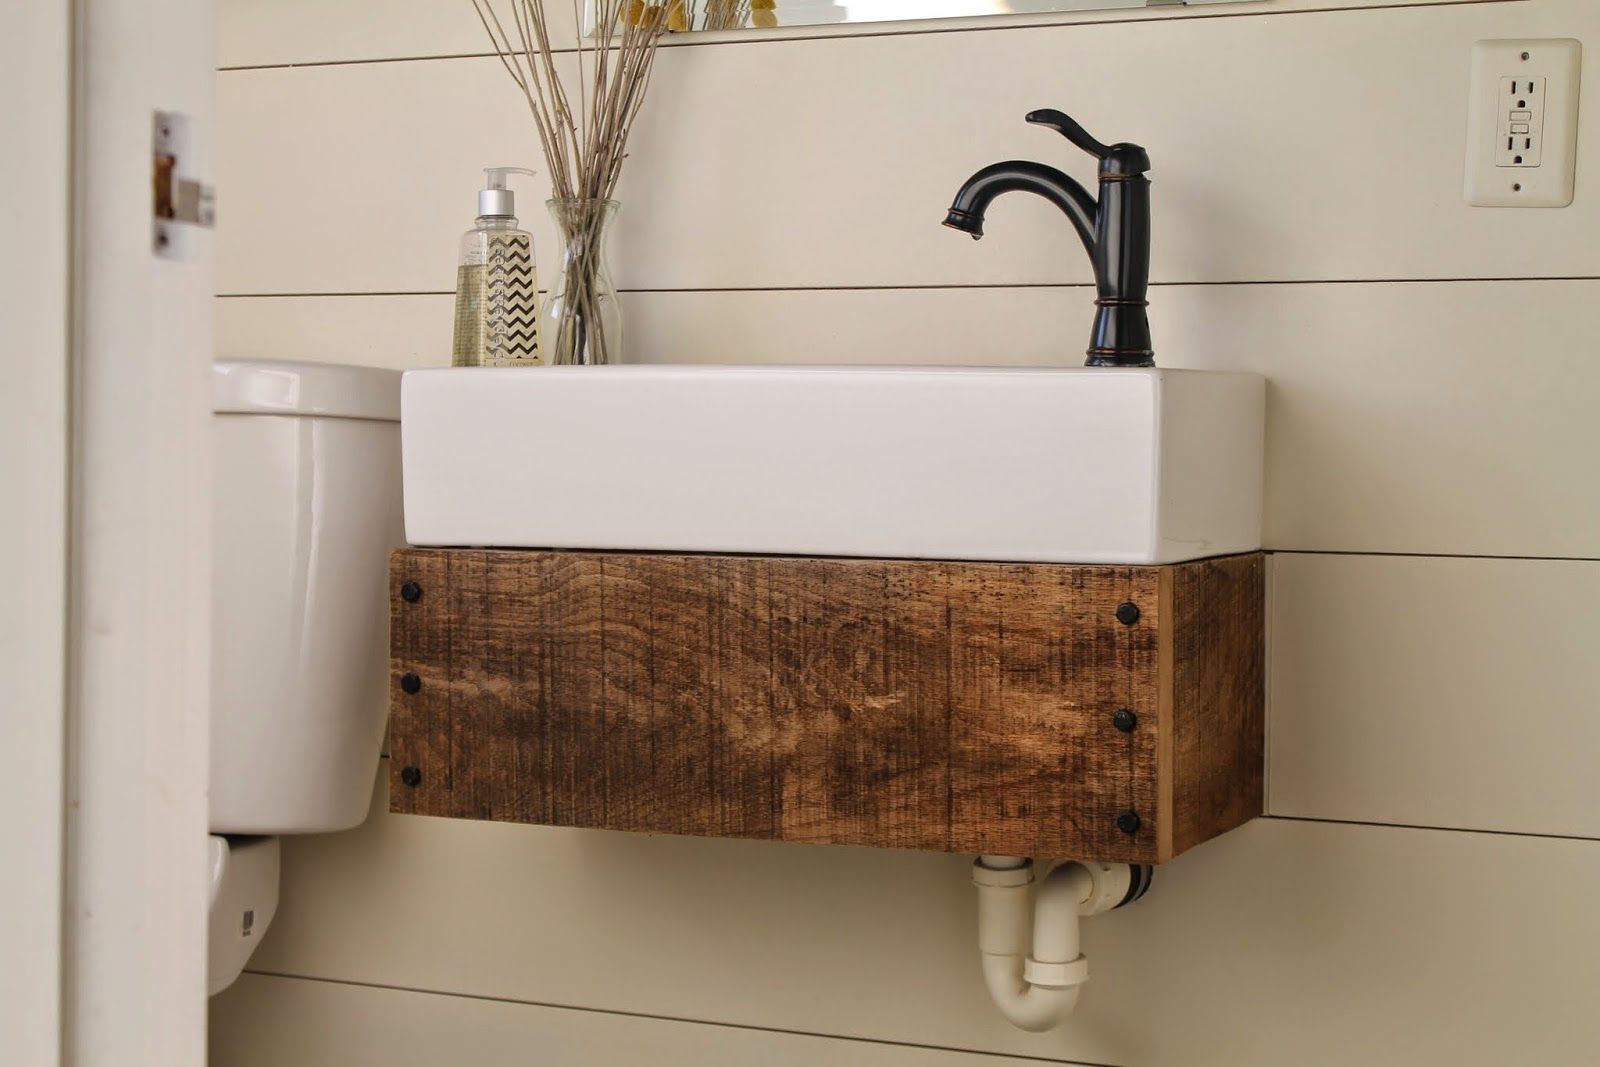 A Good Sink For A Small Bathroom Floating Bathroom Vanities Small Bathroom Sinks Ikea Sinks